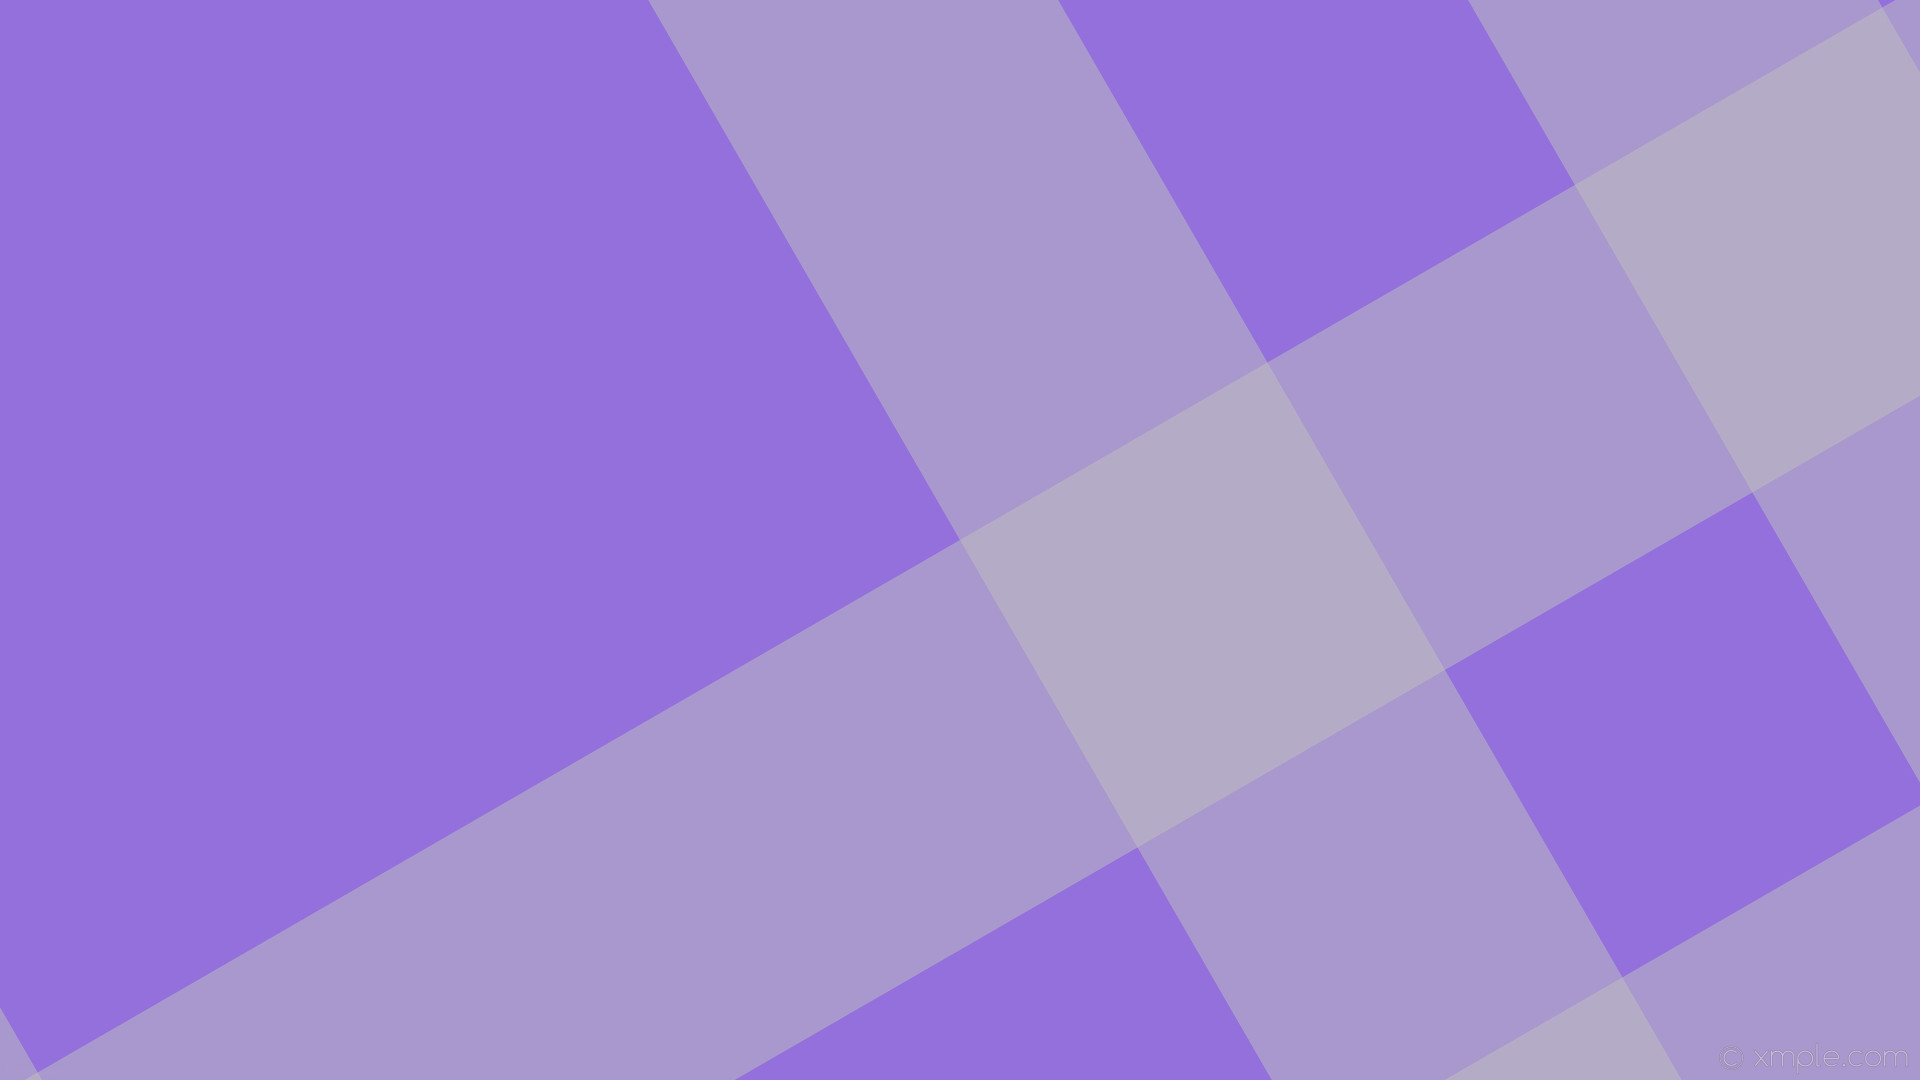 1920x1080 wallpaper grey dual striped gingham purple medium purple silver #9370db  #c0c0c0 30° 355px